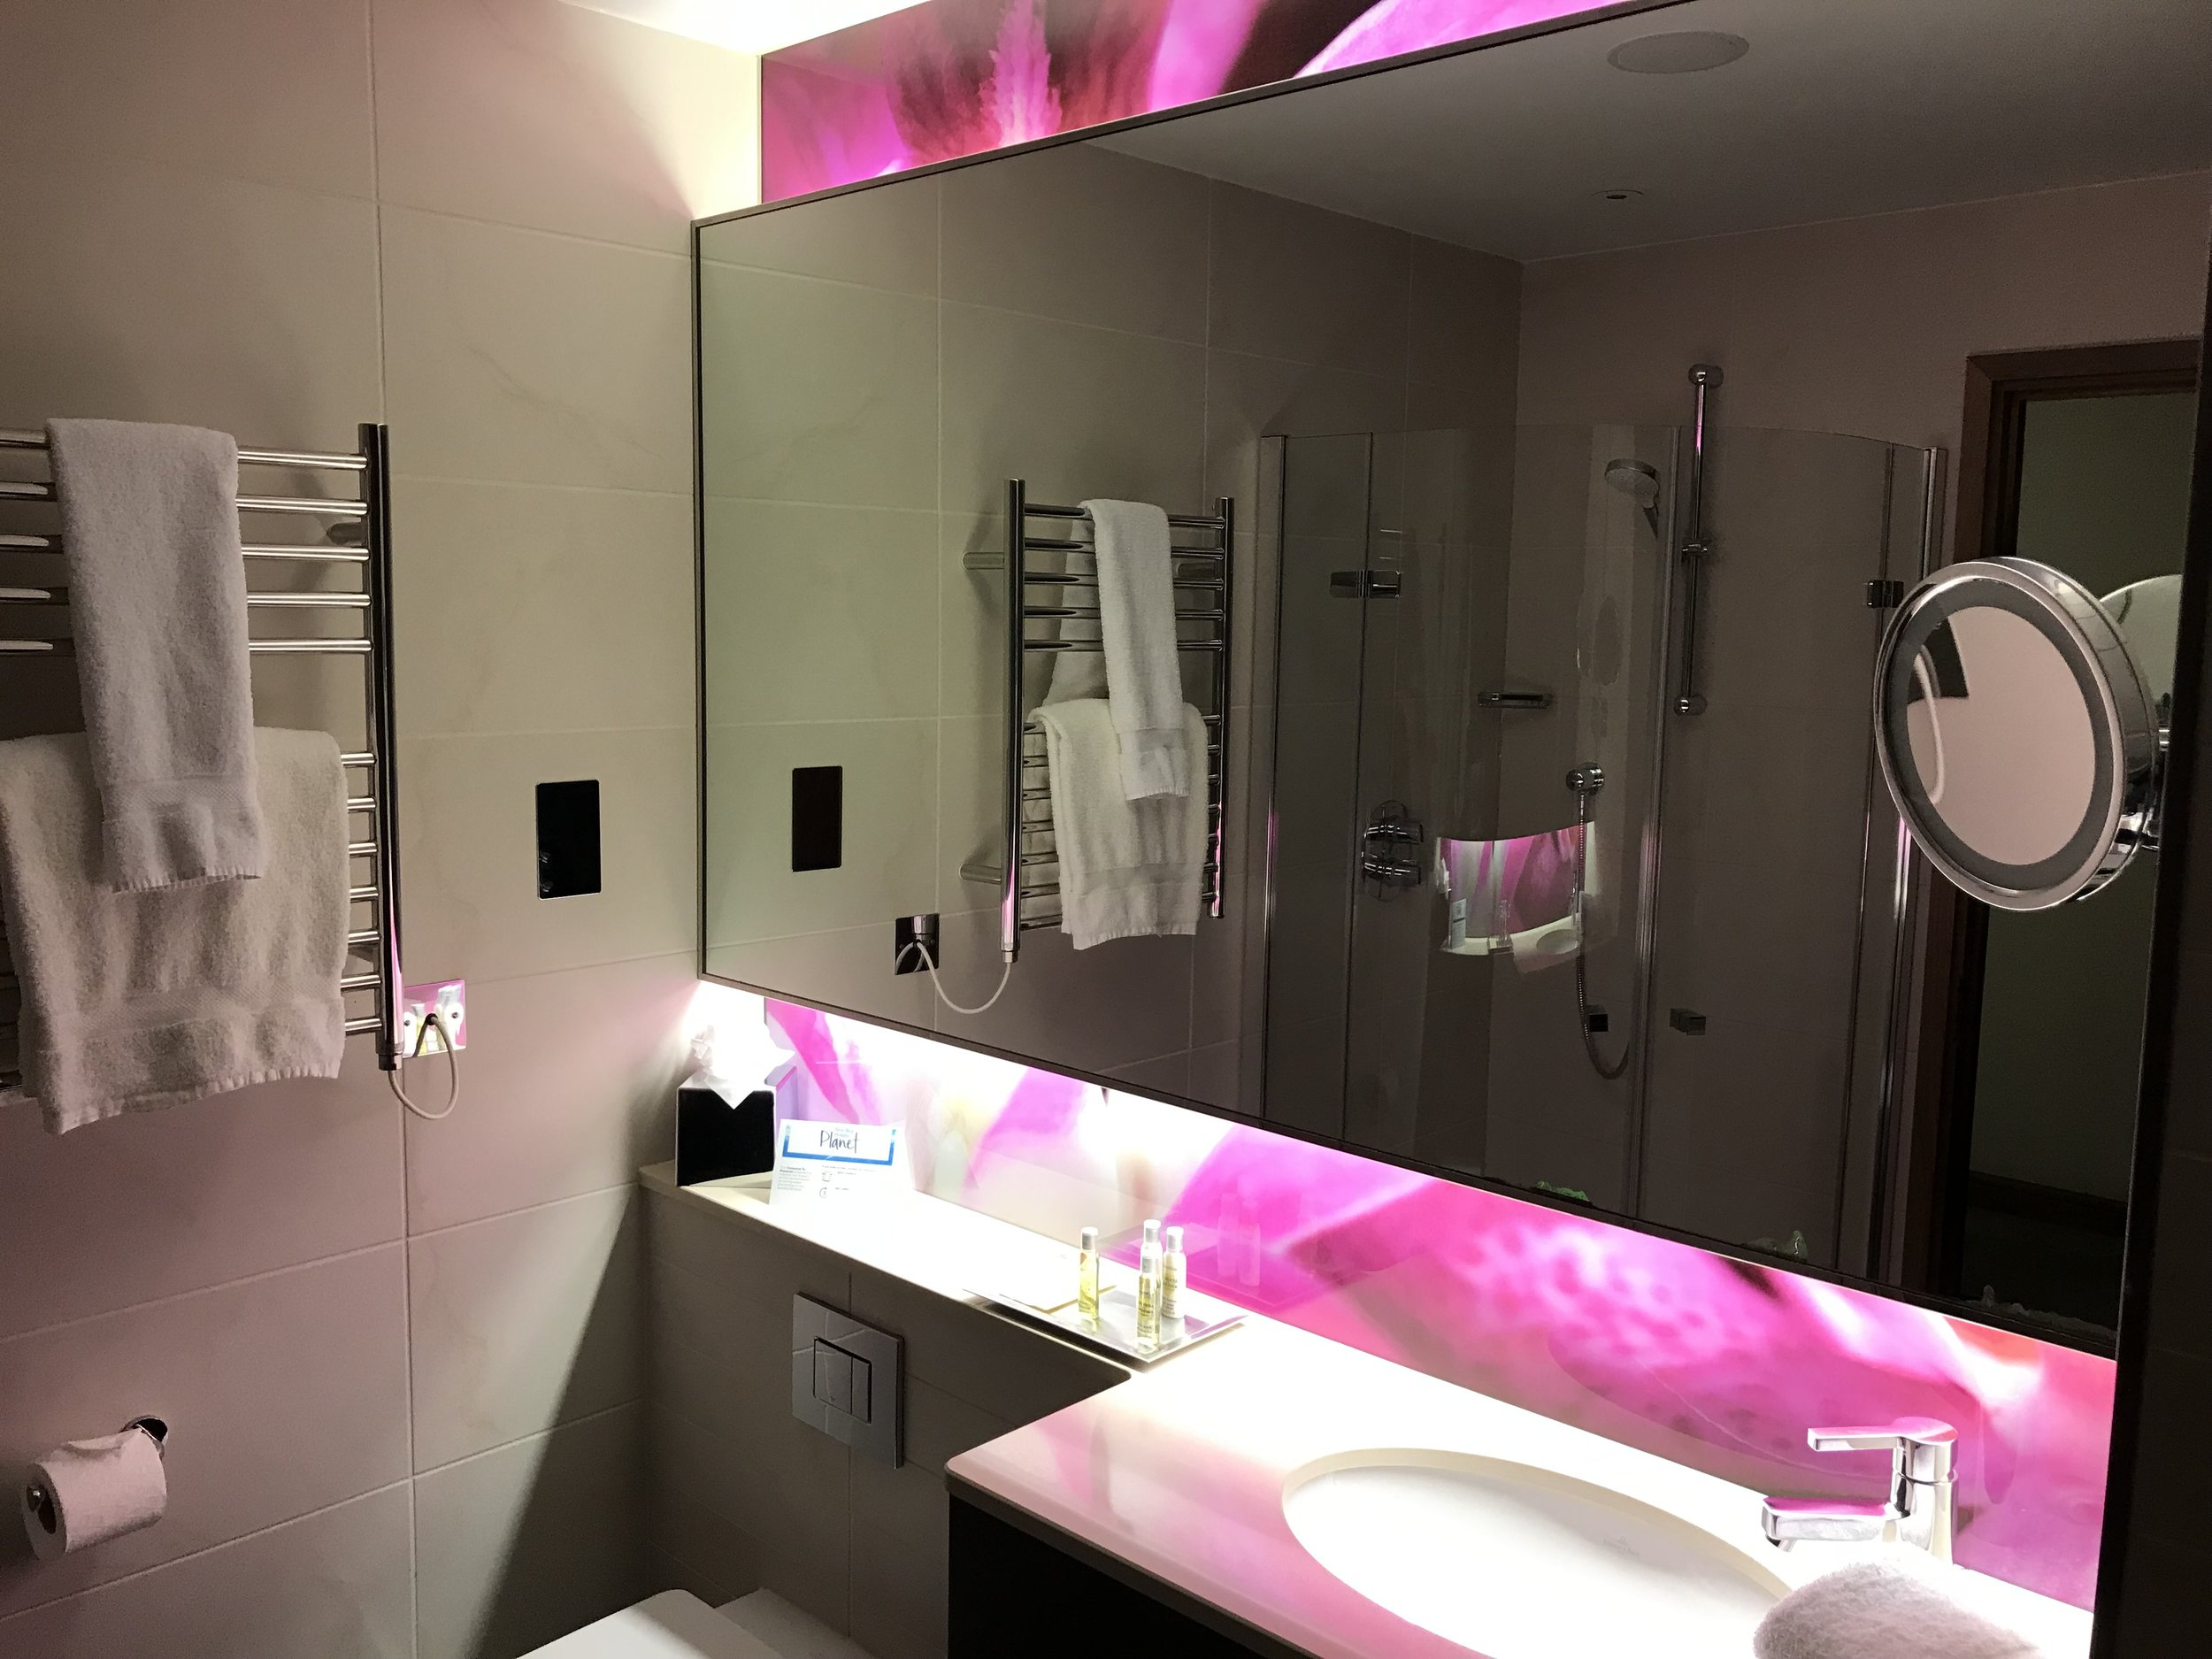 If you stay in an Executive room the shower is separate to the bath, in other standard rooms it's all in one.